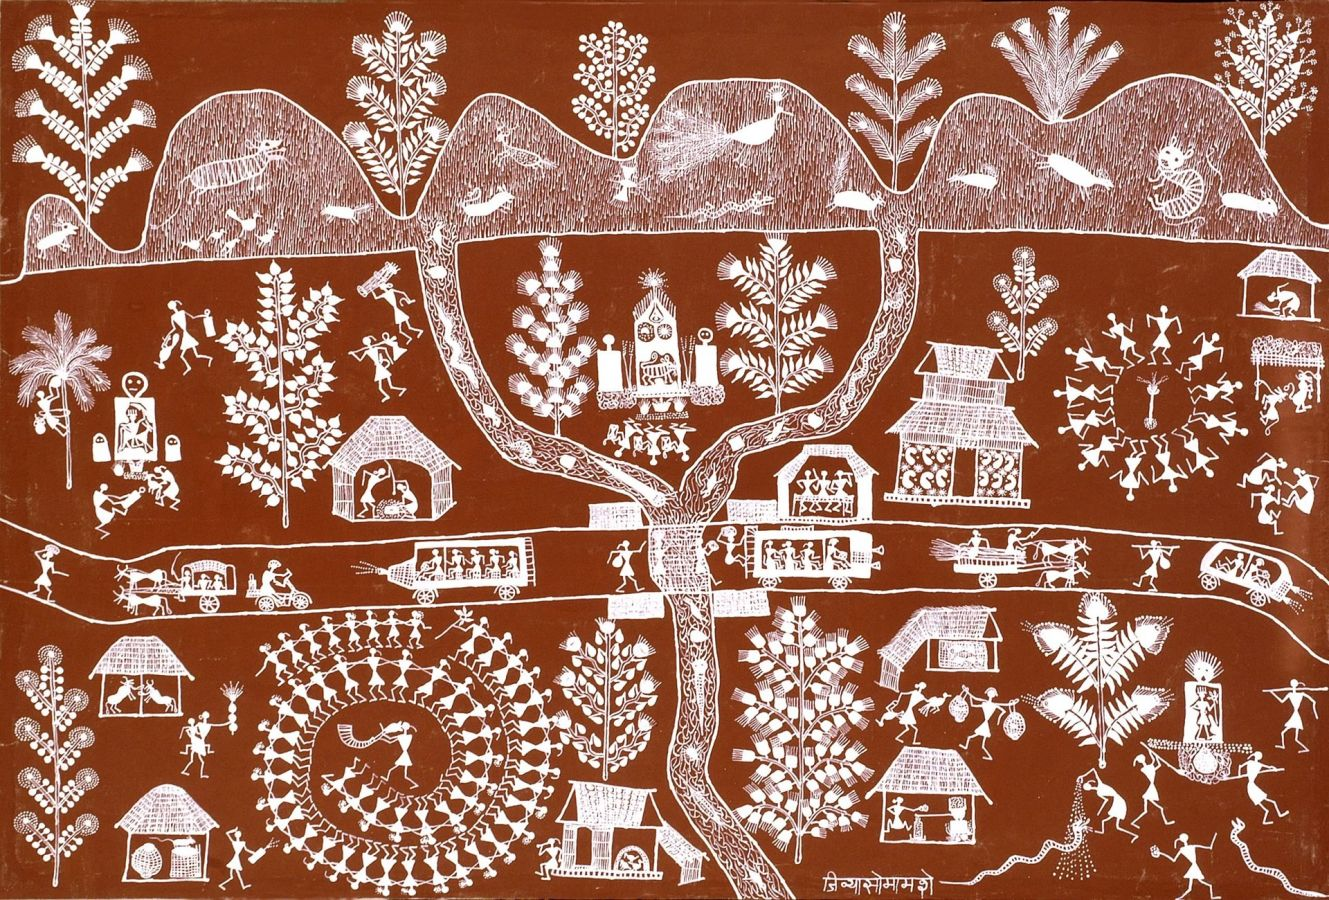 The Warli Village